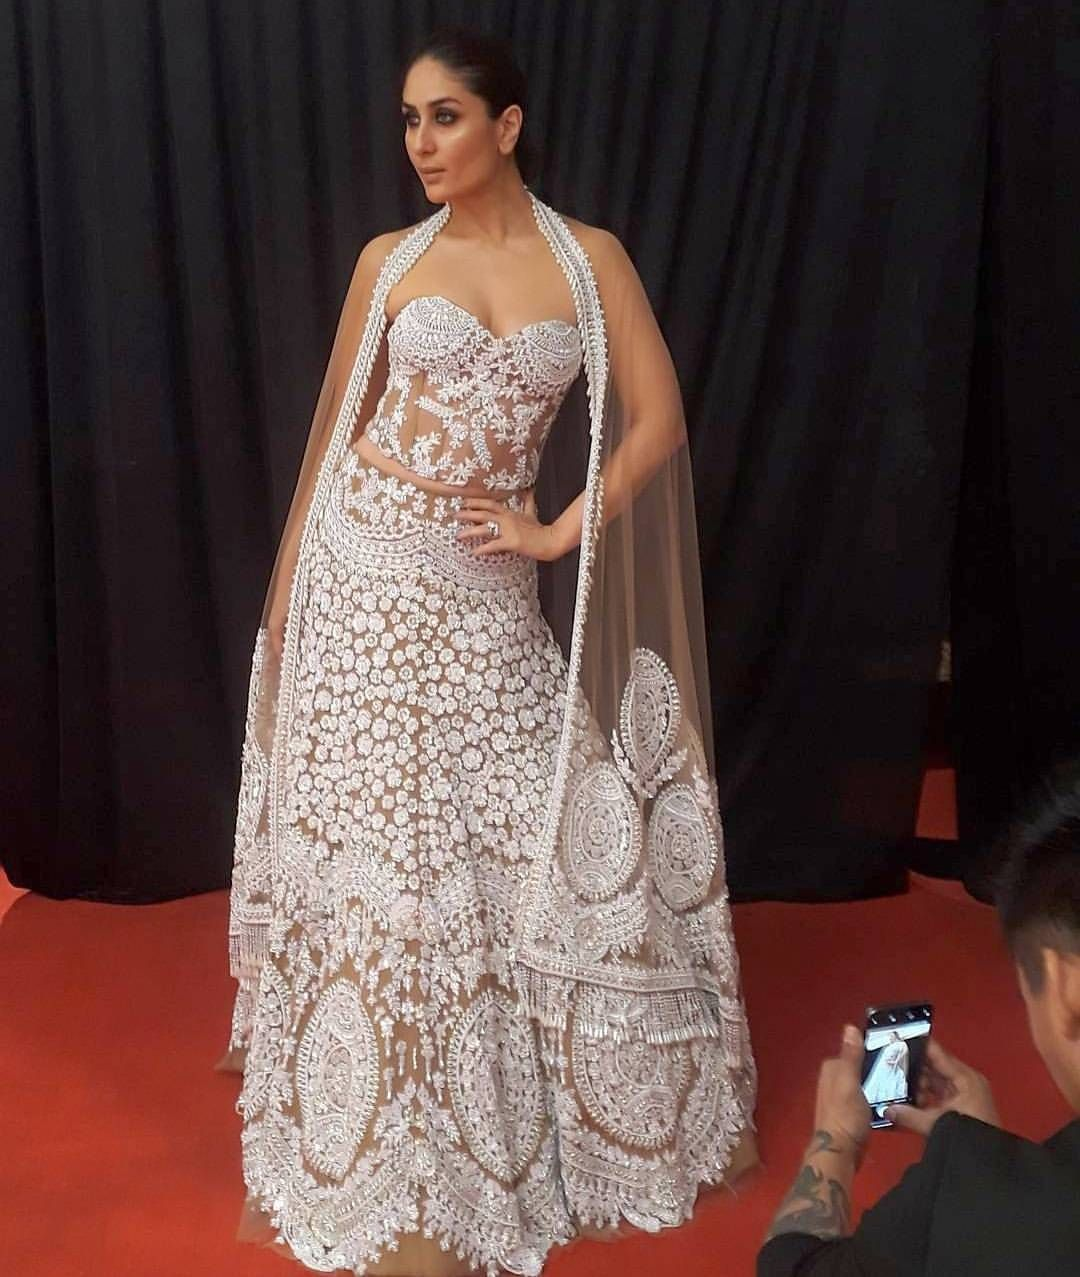 KareenaKapoor oozed glamour as she walked the ramp for ...